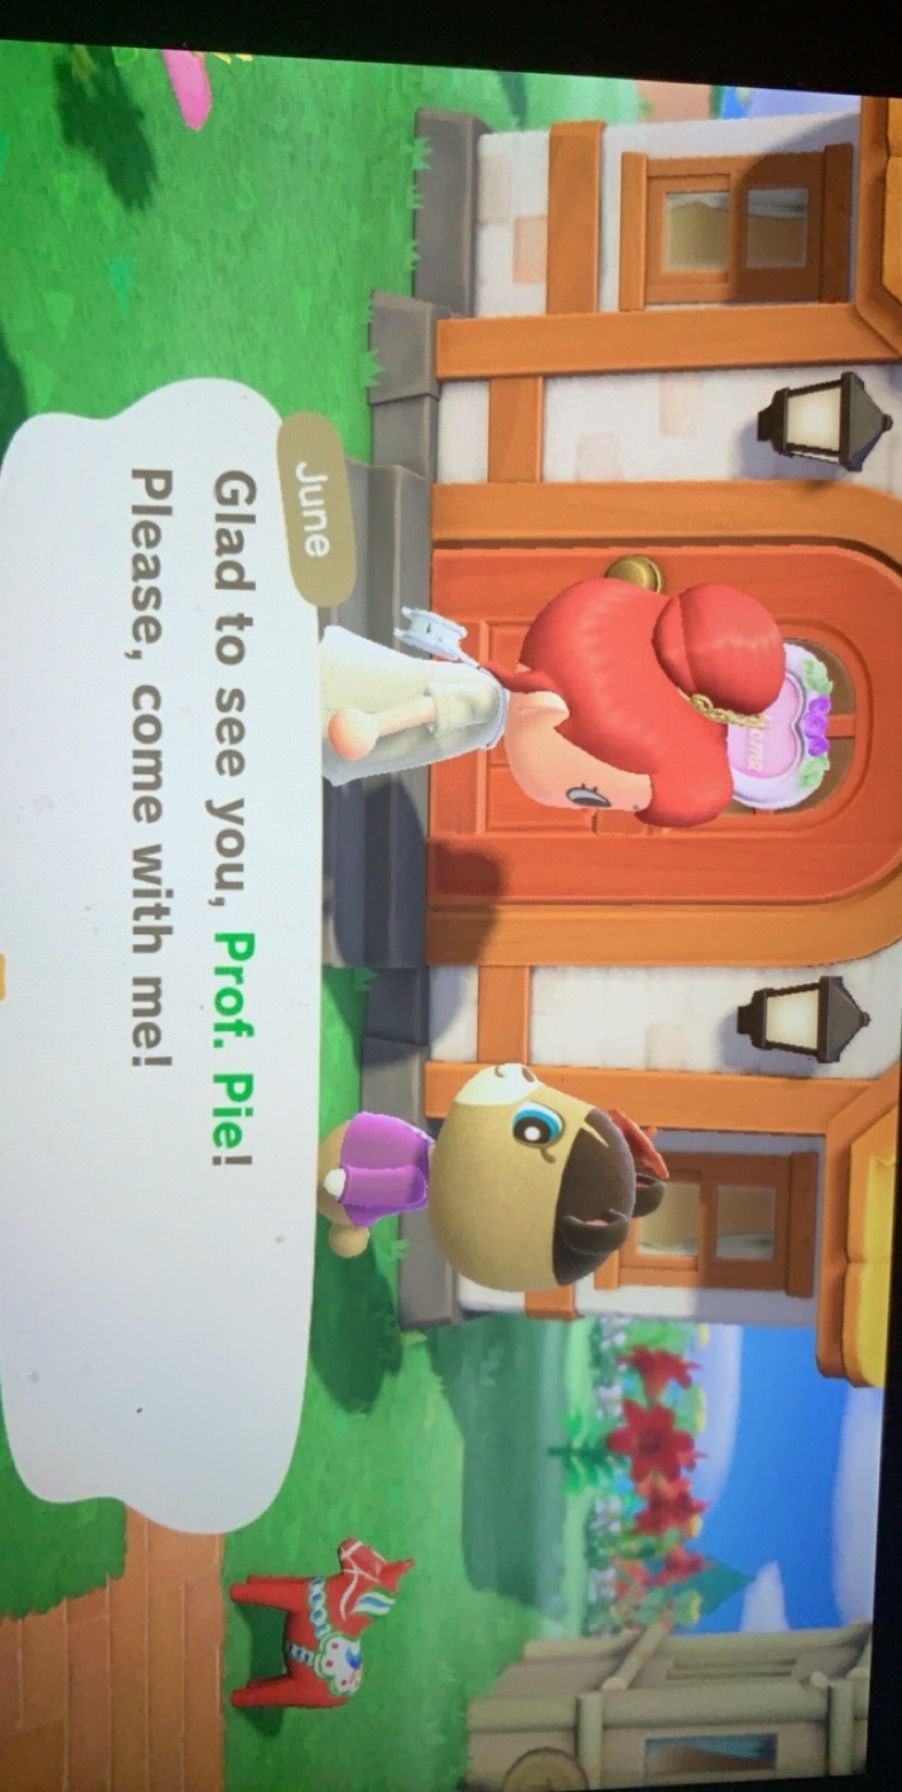 16+ Eloise animal crossing new horizons images